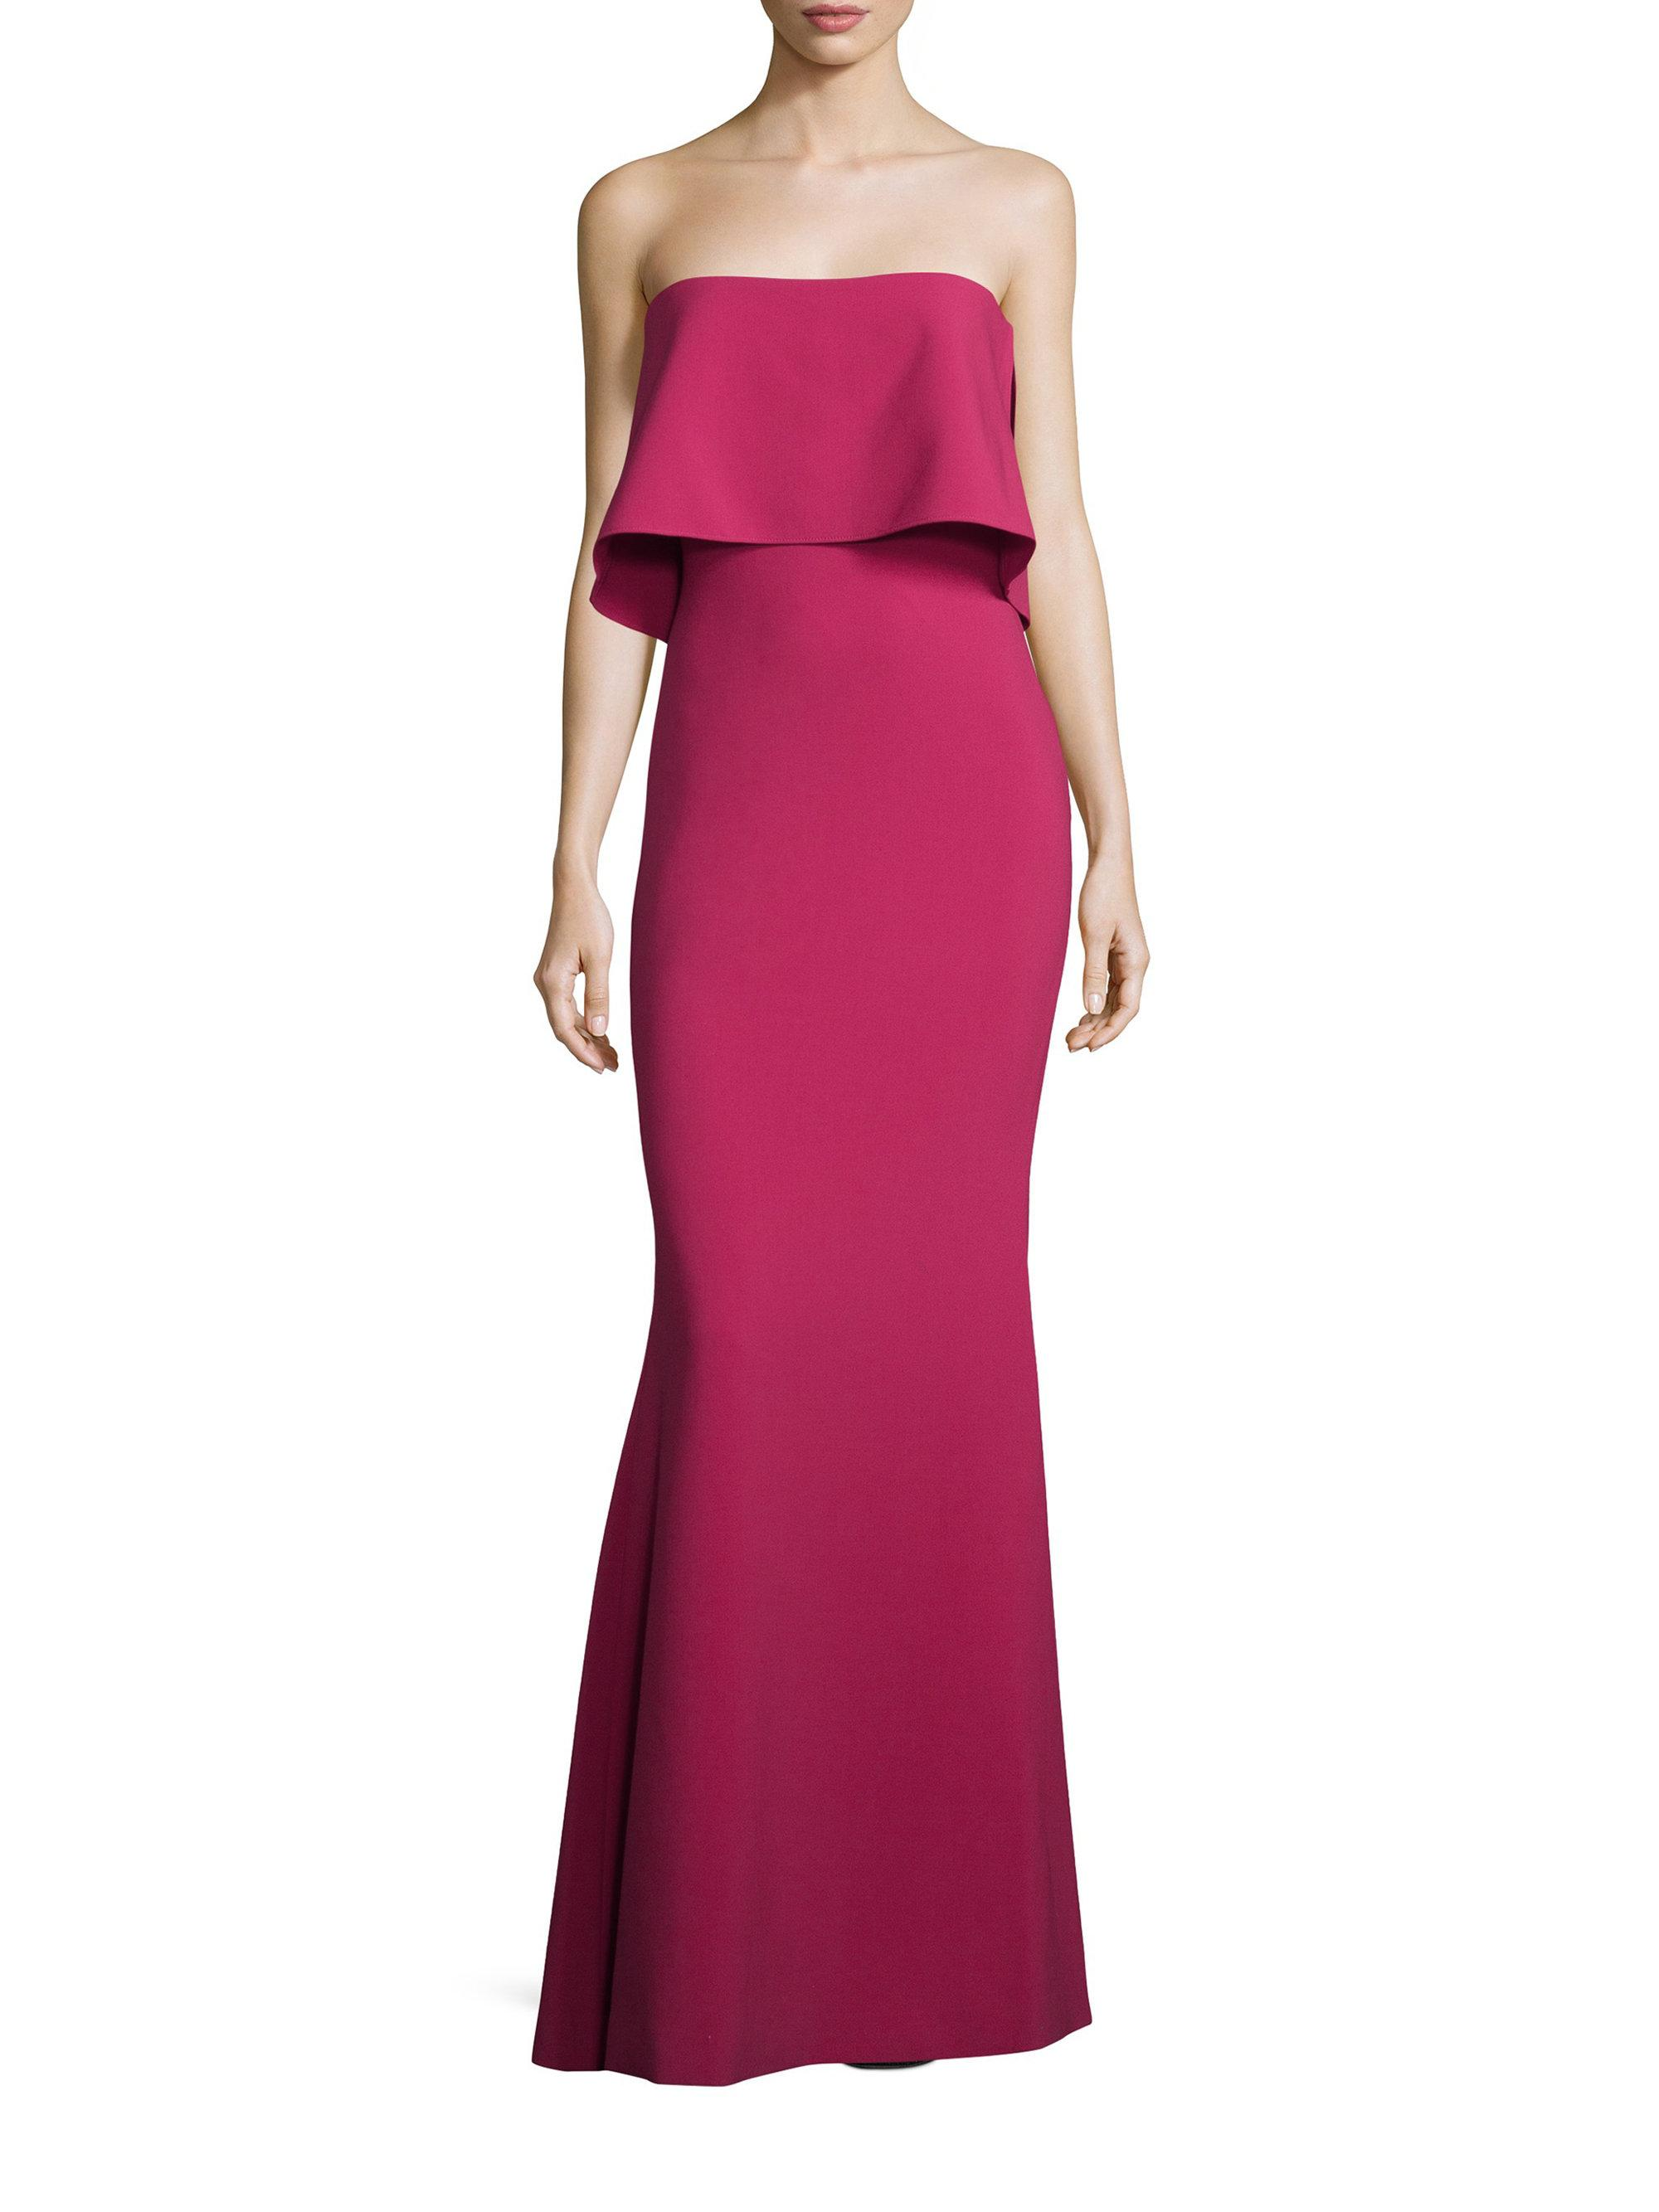 driggs women Shop for likely driggs dress in ultramarine at revolve free 2-3 day shipping and returns, 30 day price match guarantee.